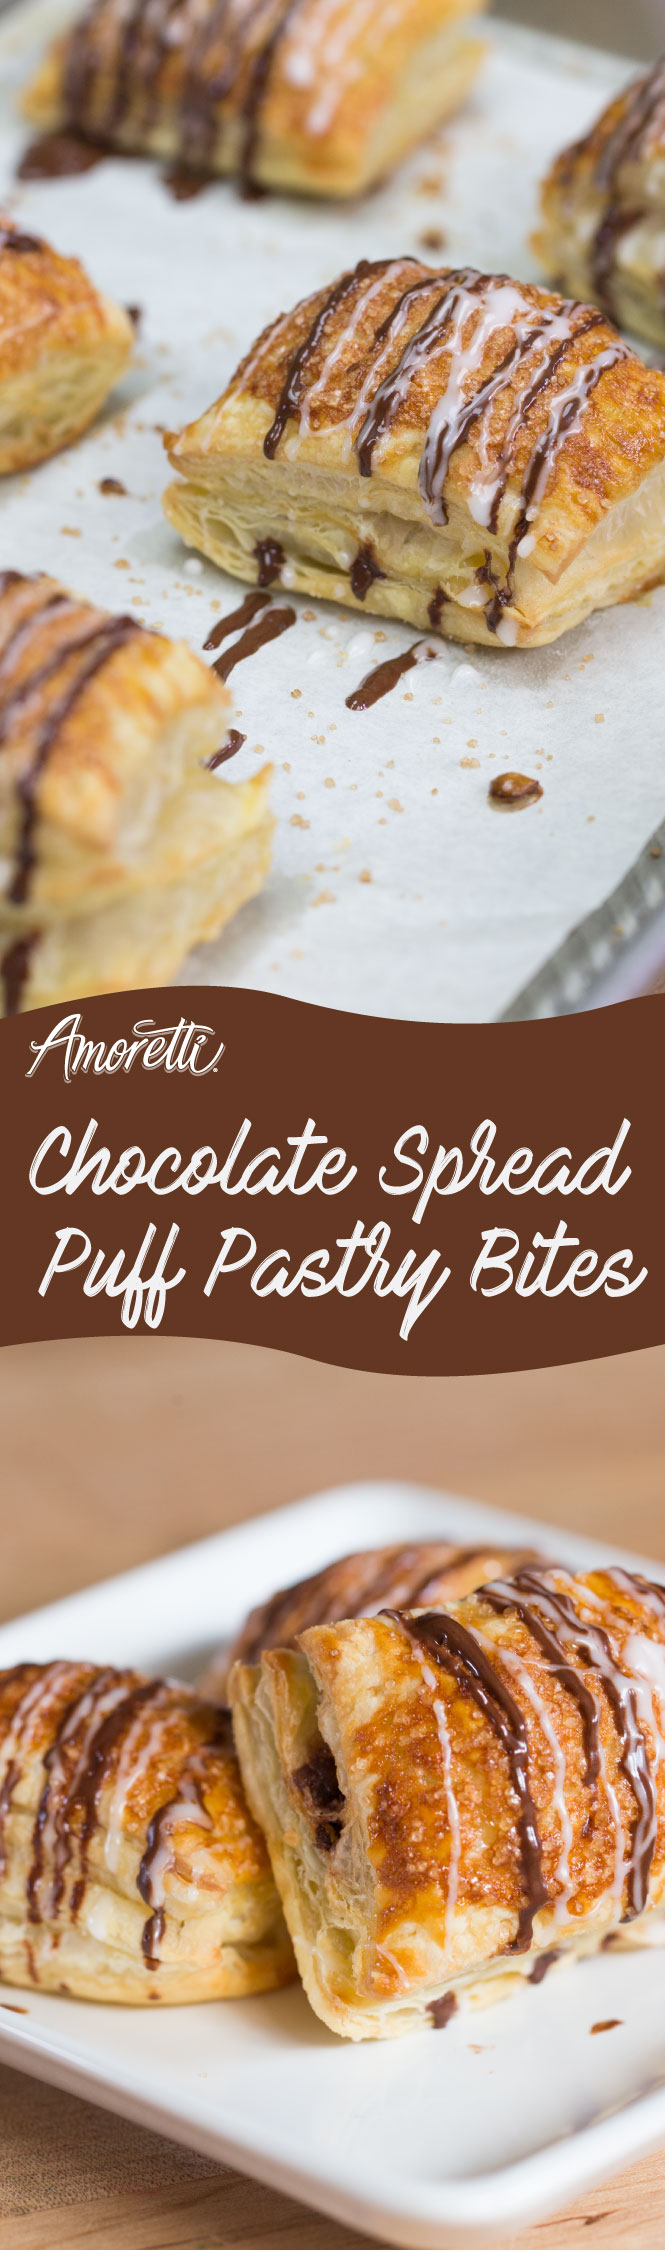 Make this sweet, flaky treat when that next craving hits!